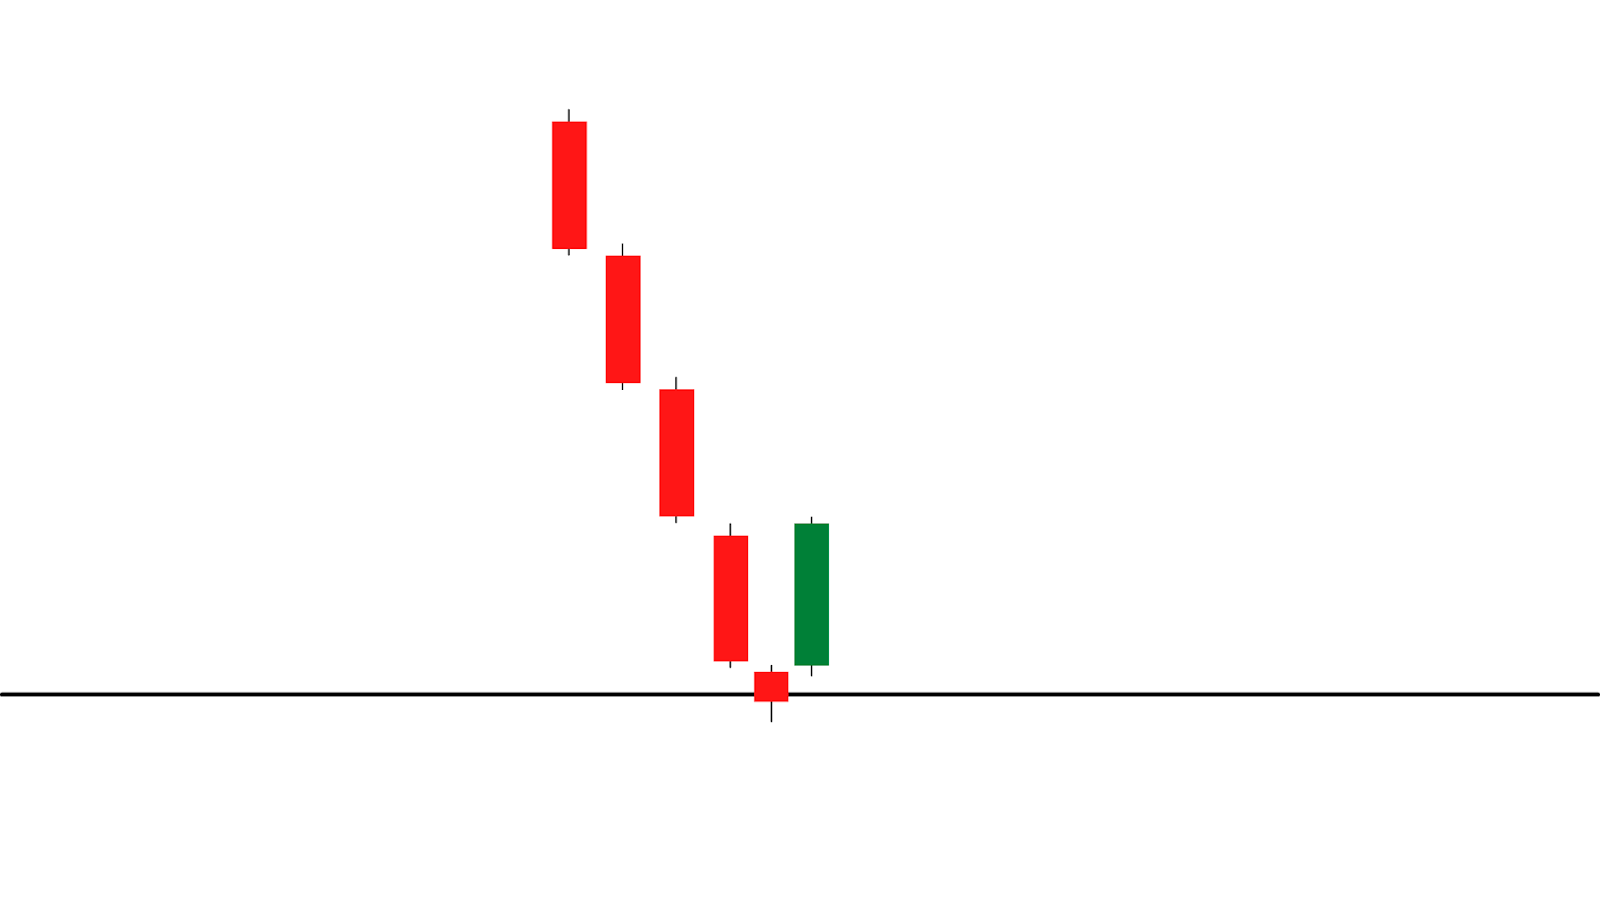 The third candle of a morning star pattern that signal an upcoming bullish pressure.